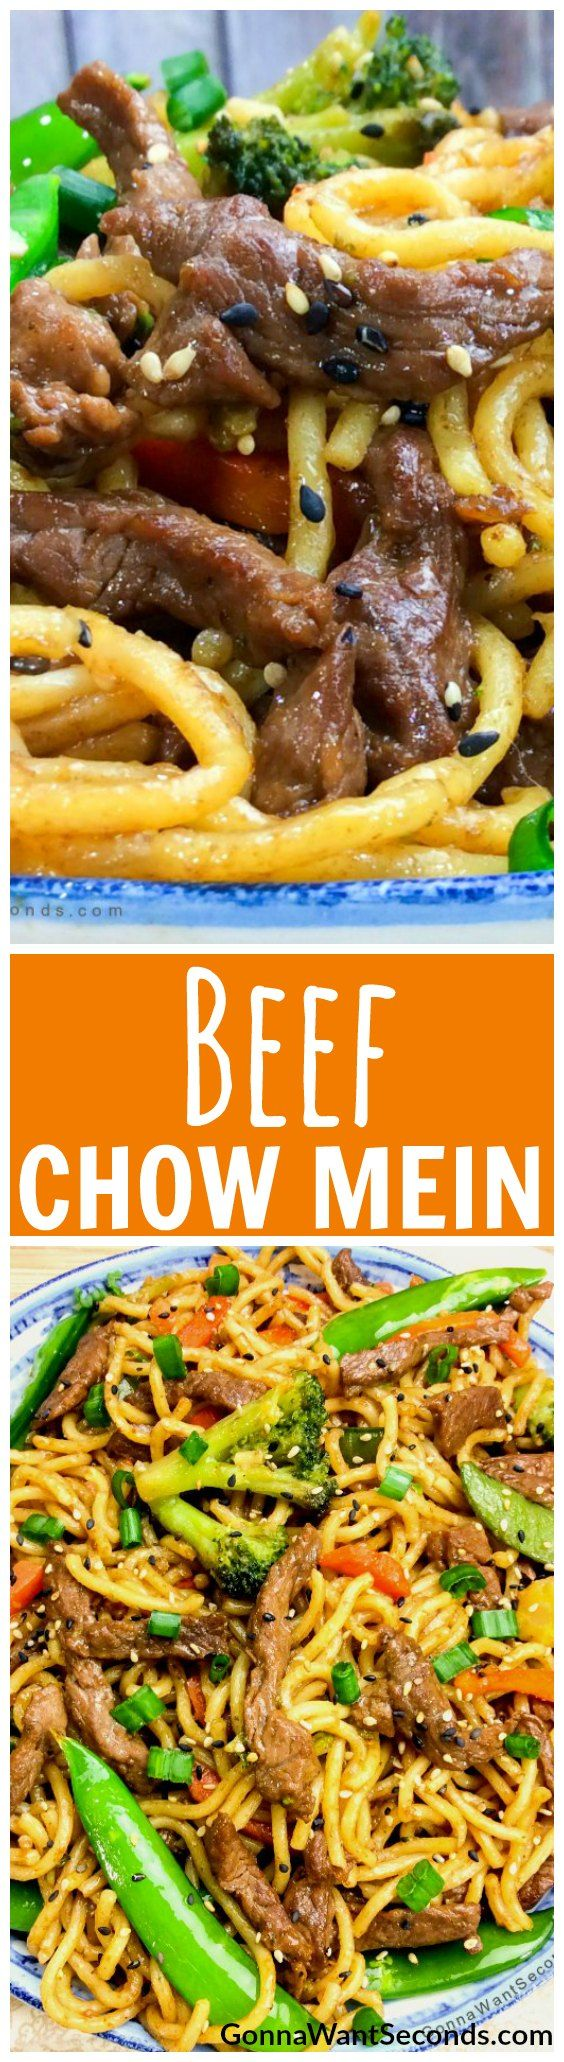 Put down that to-go menu and hop in the kitchen to put together this simple Beef Chow Mein. Crisp veggies, tender beef, and eggy noodles are tossed in a Chinese-inspired sauce that will have your family looking around the kitchen for those little takeout boxes.